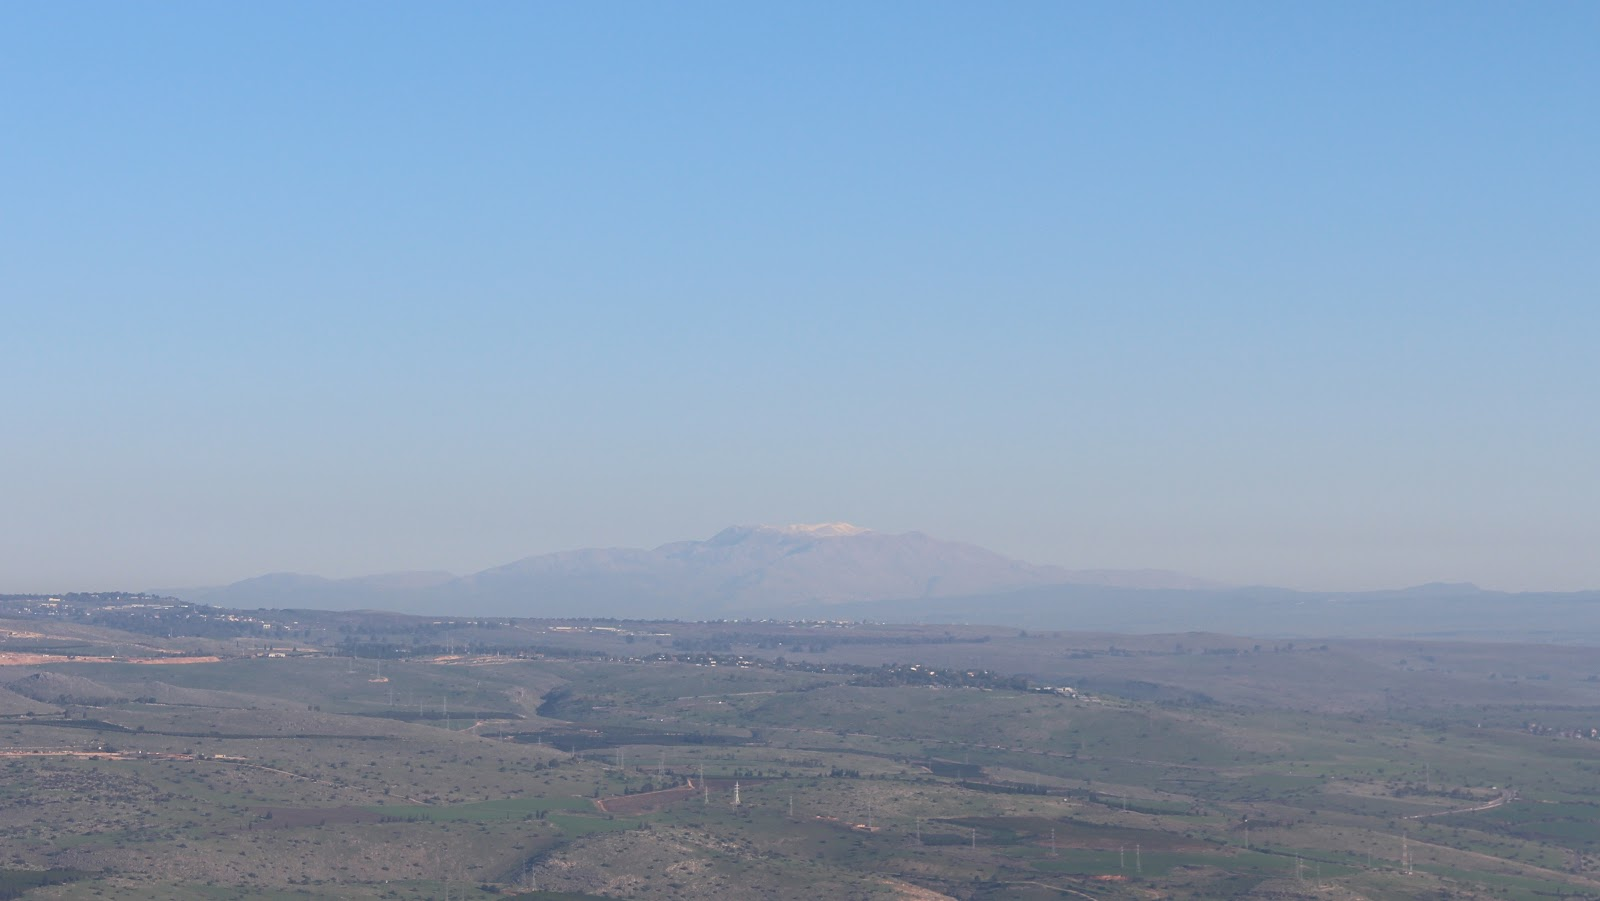 Mount Hermon: Things To Do in Israel